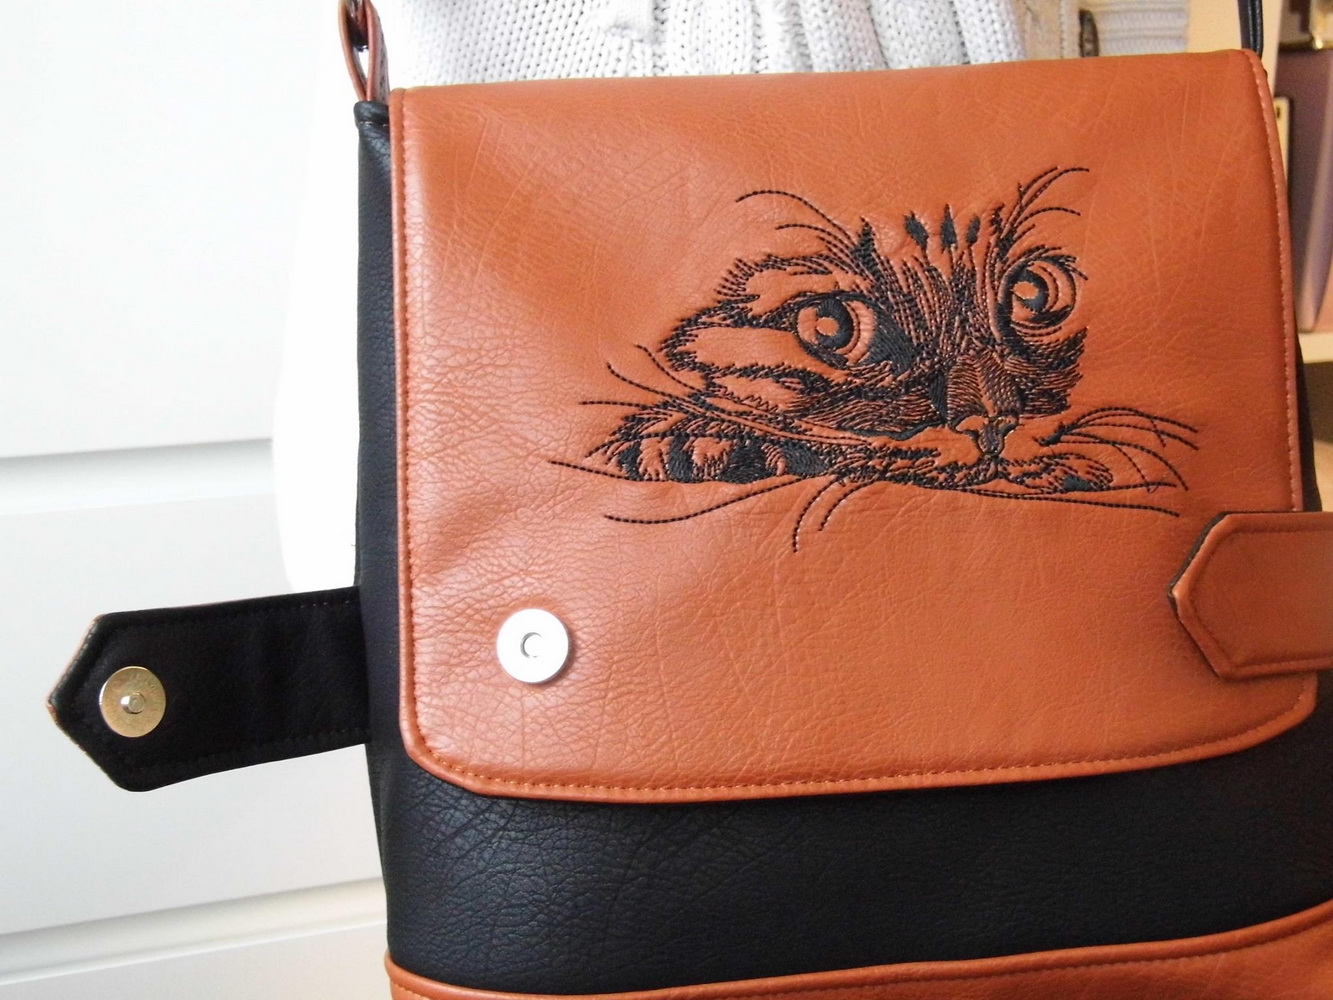 Curious cat 5 design on bag2